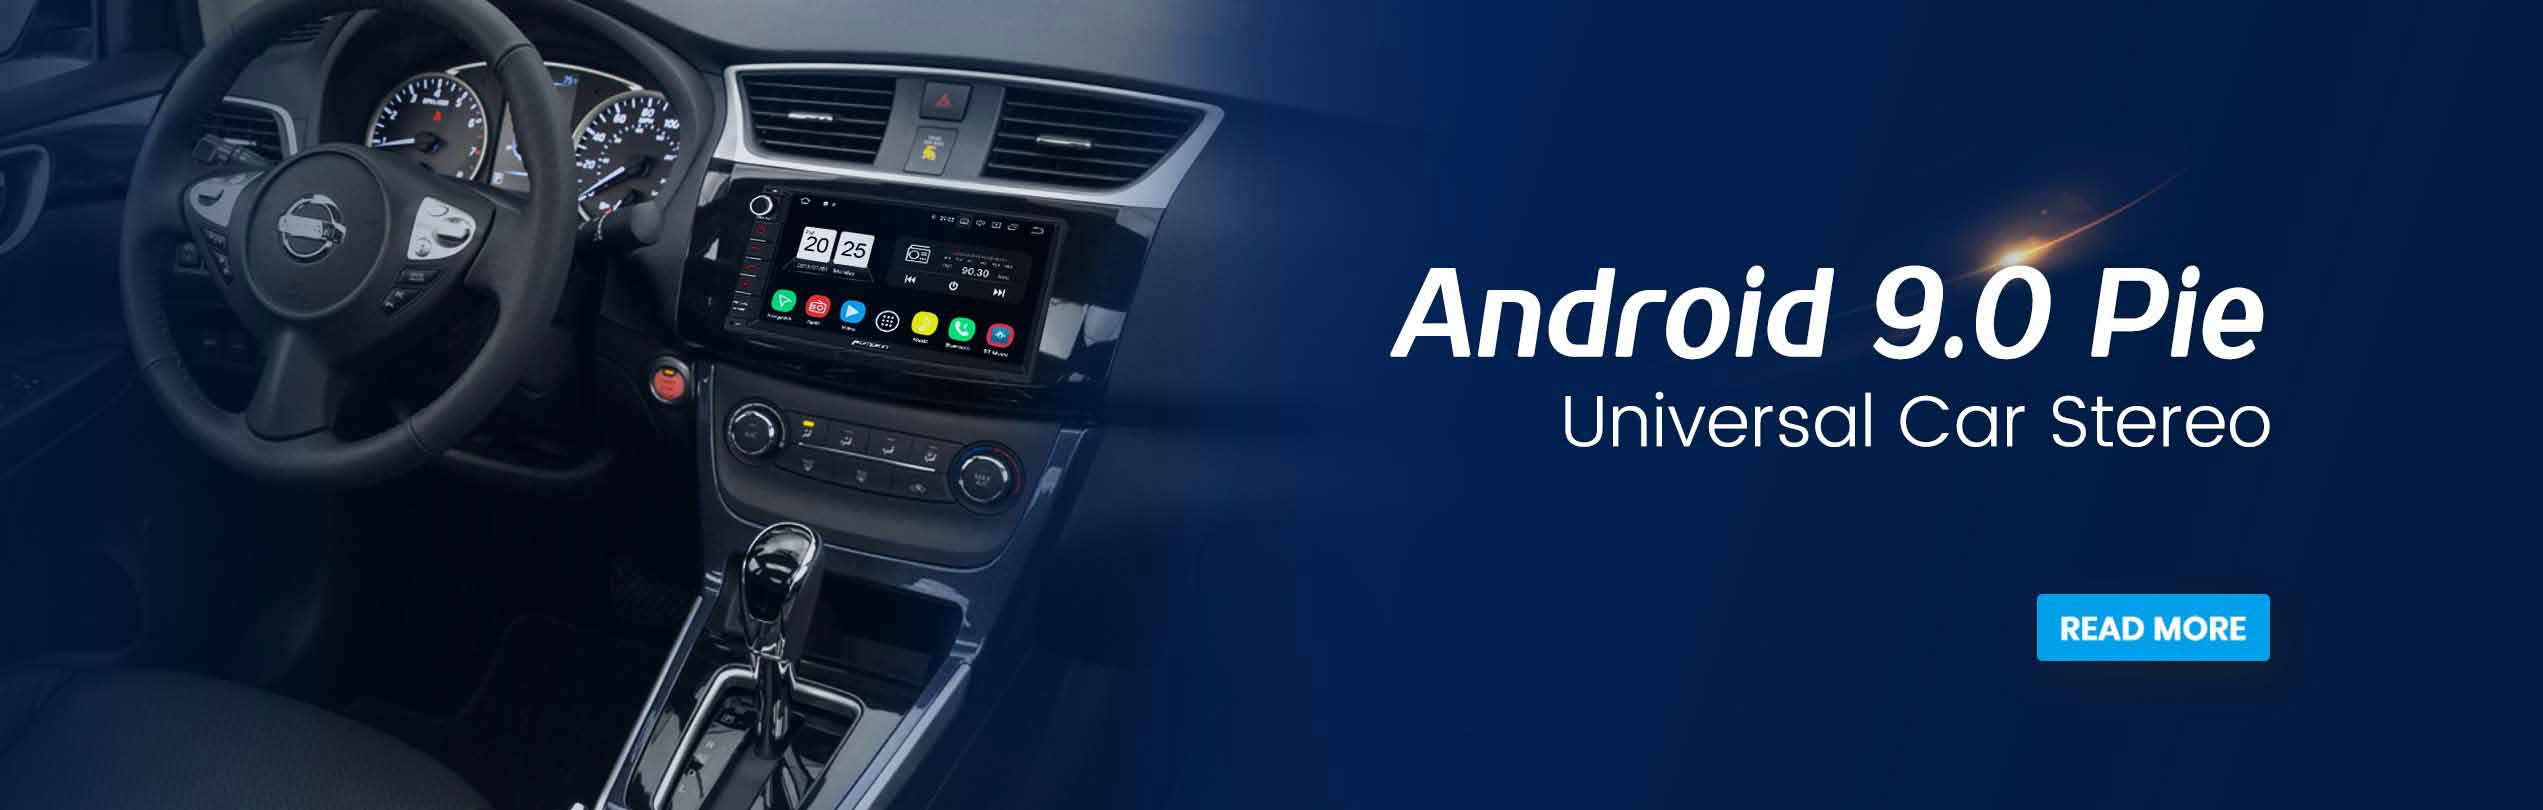 android 9.0 pie universal car stereo